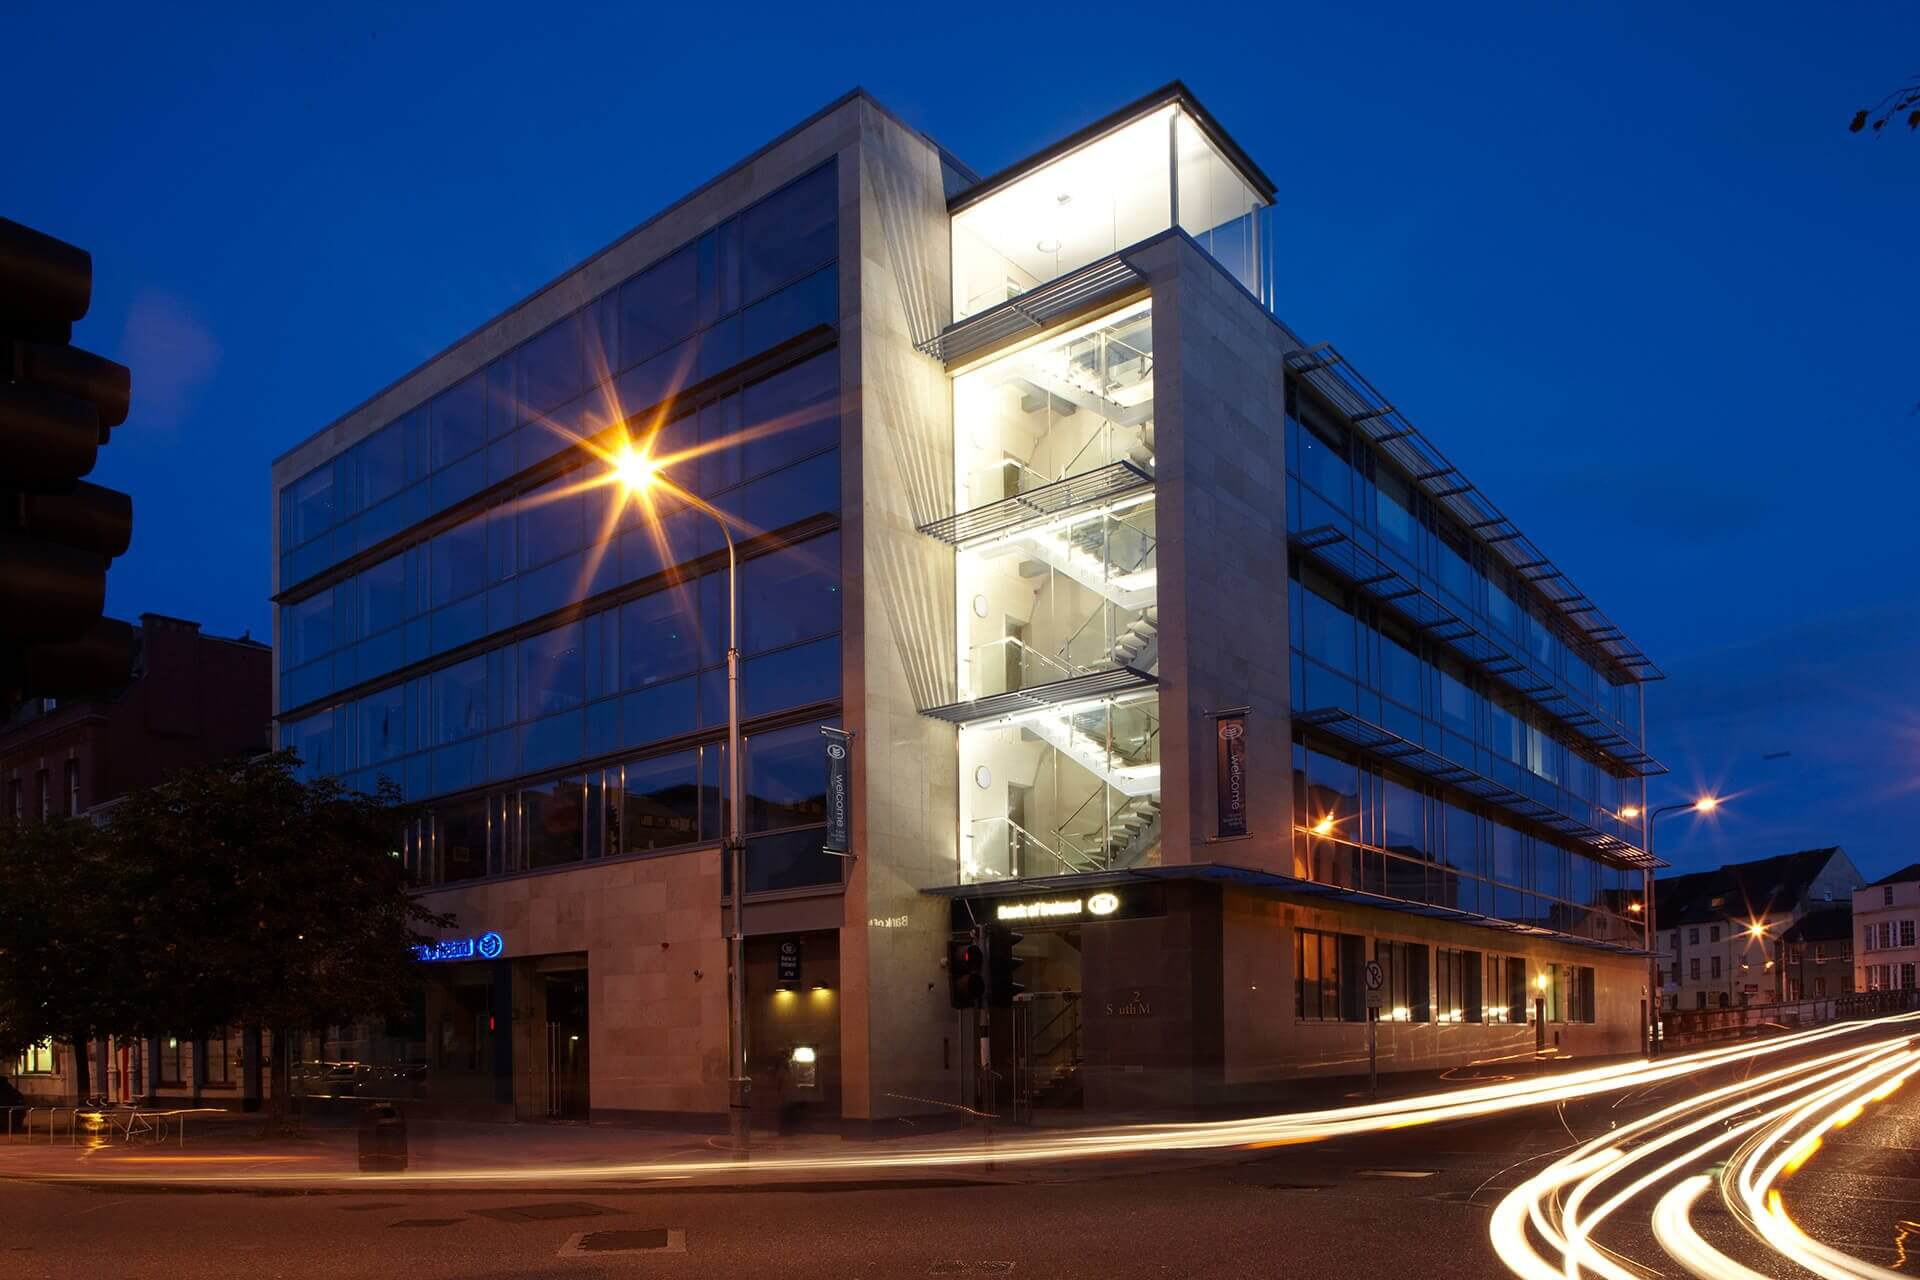 Mixed Use Retail Cjfa Architecture Bank Of Ireland South Mall Cork 1